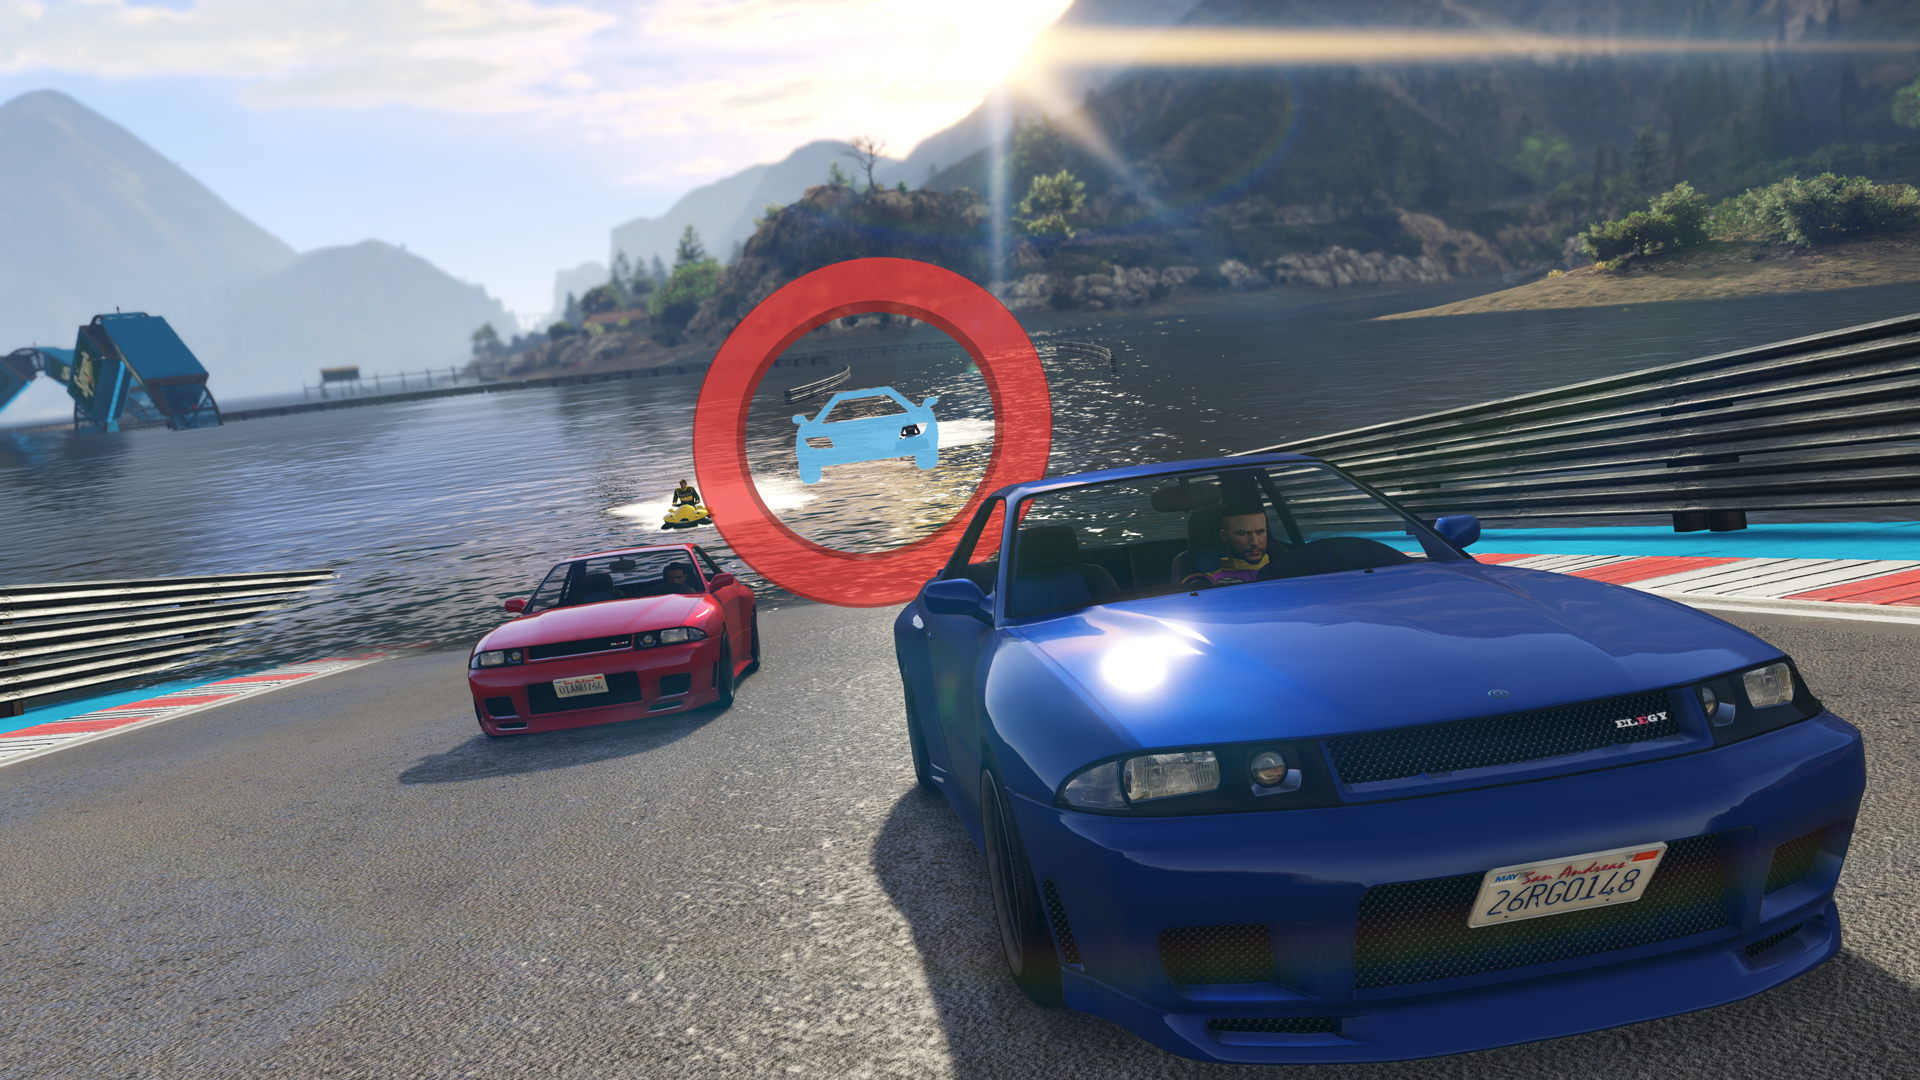 [Watch] Grand Theft Auto V is getting a Smuggler's Run update next week